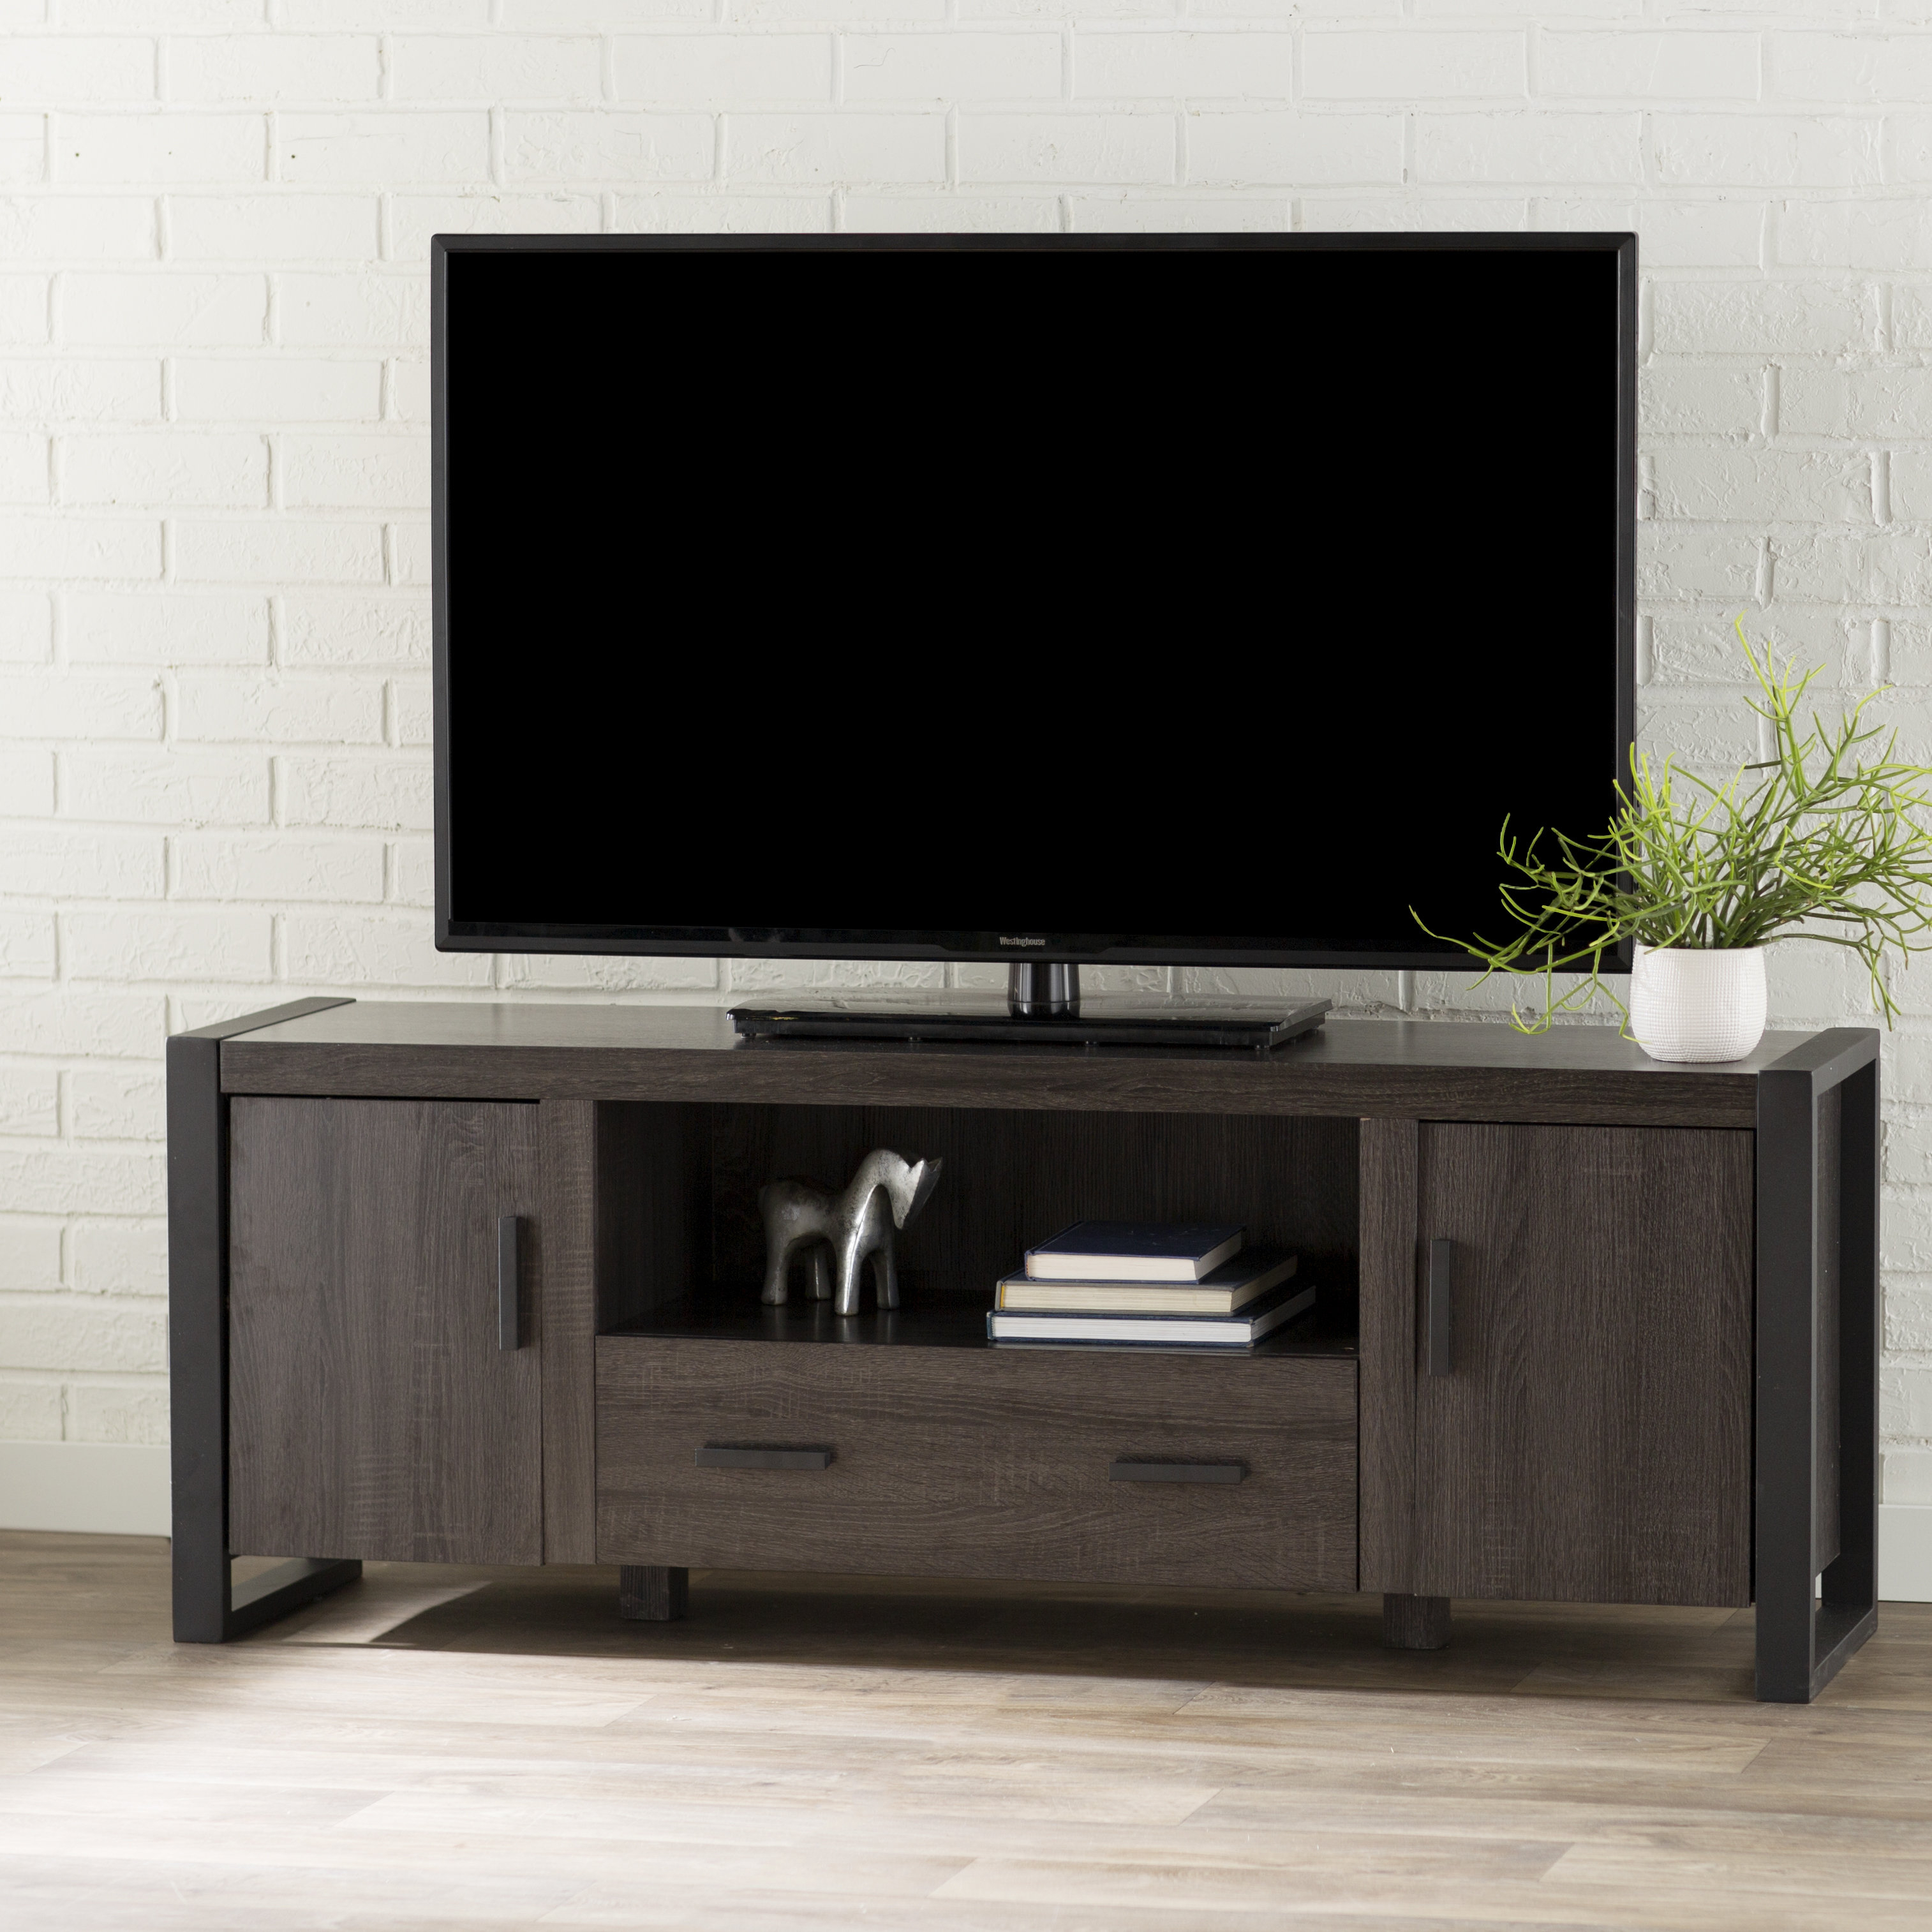 Modern Grey Tv Stands | Allmodern Pertaining To Sinclair Blue 54 Inch Tv Stands (View 21 of 30)